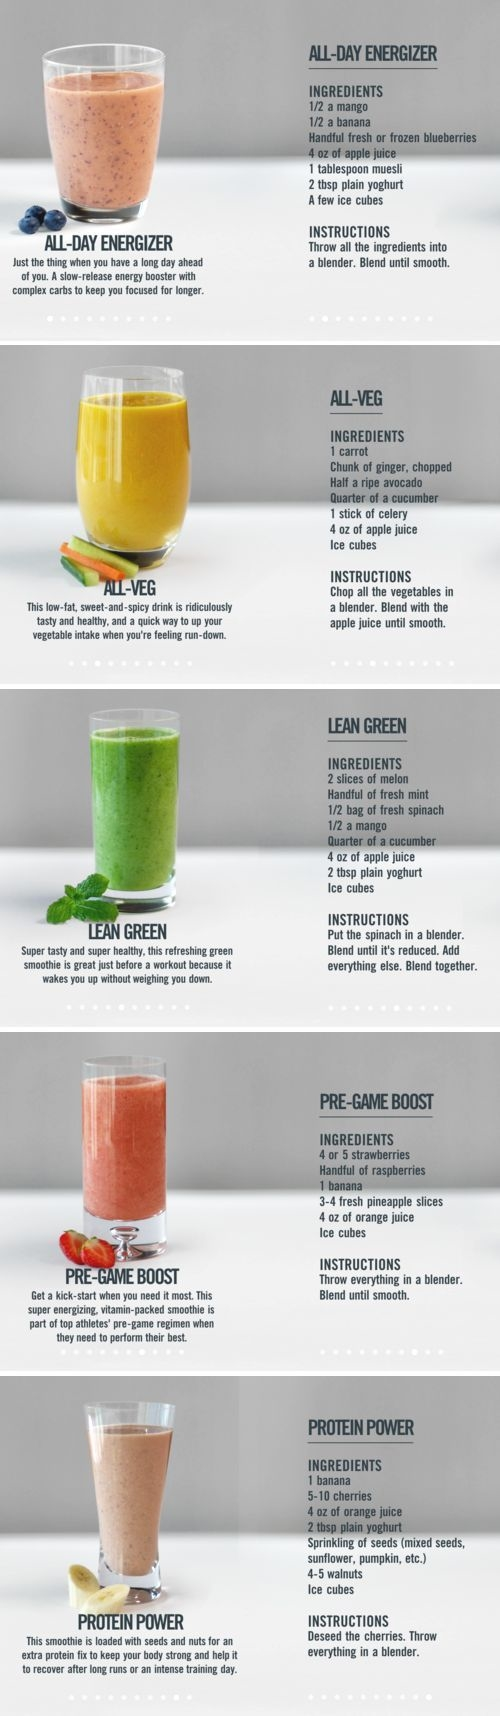 How to lose lose fat on stomach